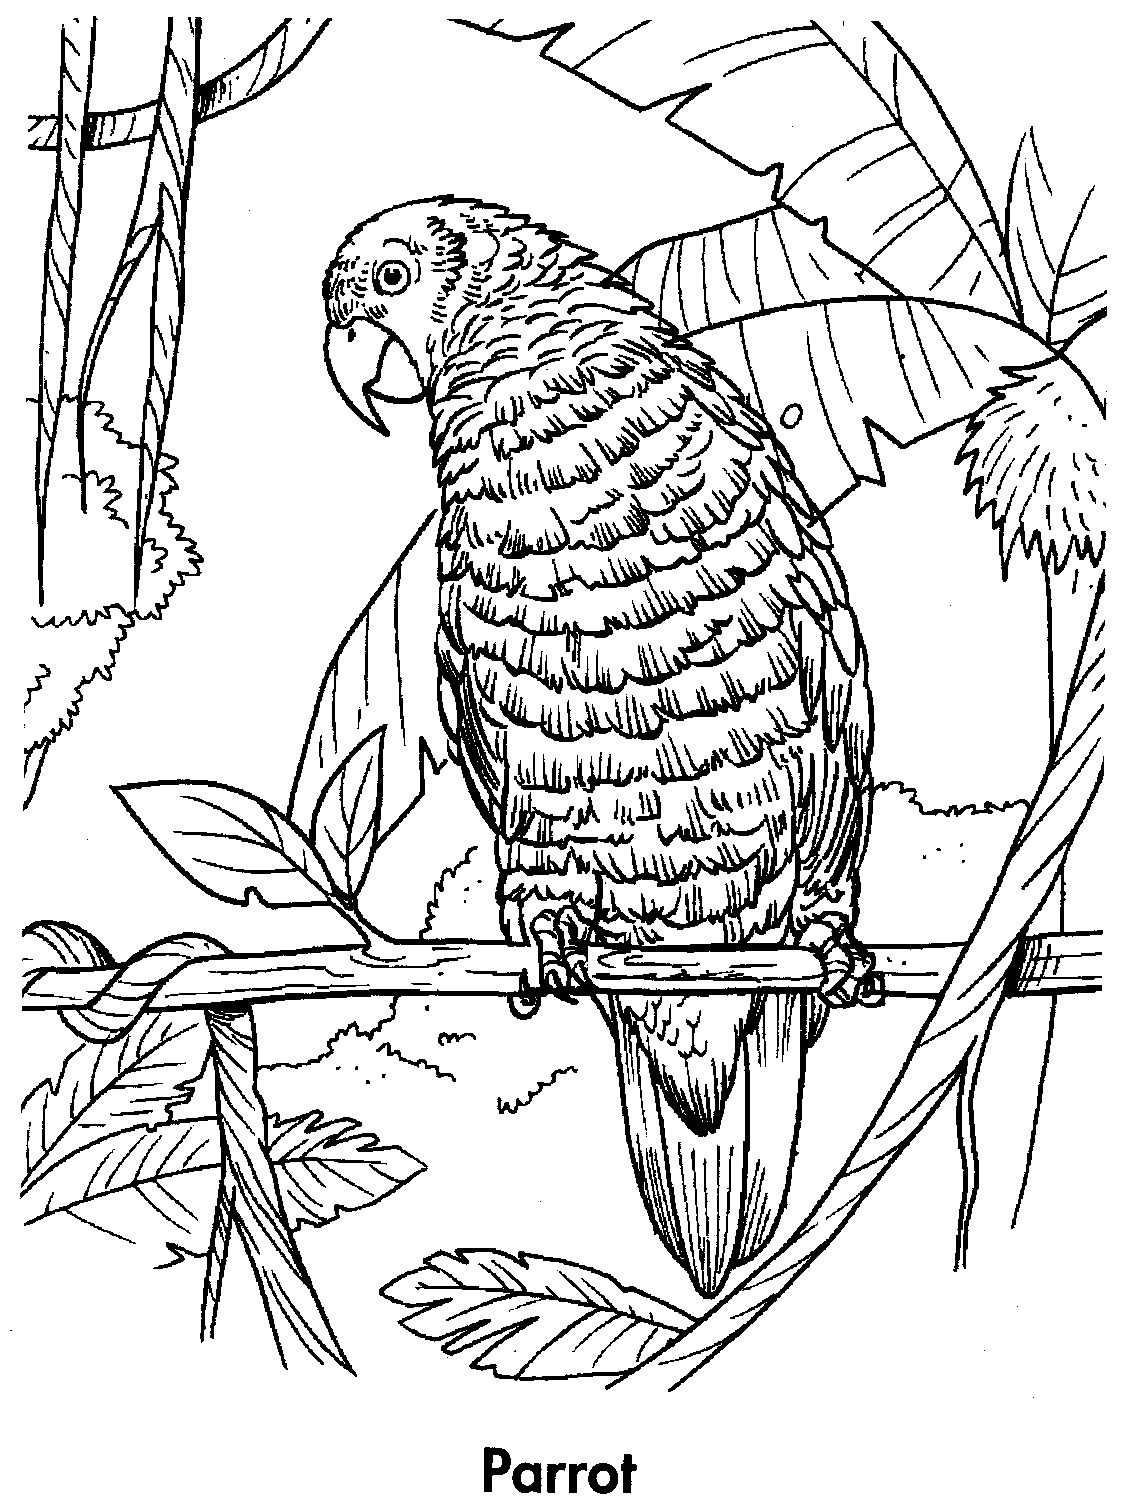 macaw colouring pages macaw coloring page download free macaw coloring page macaw pages colouring